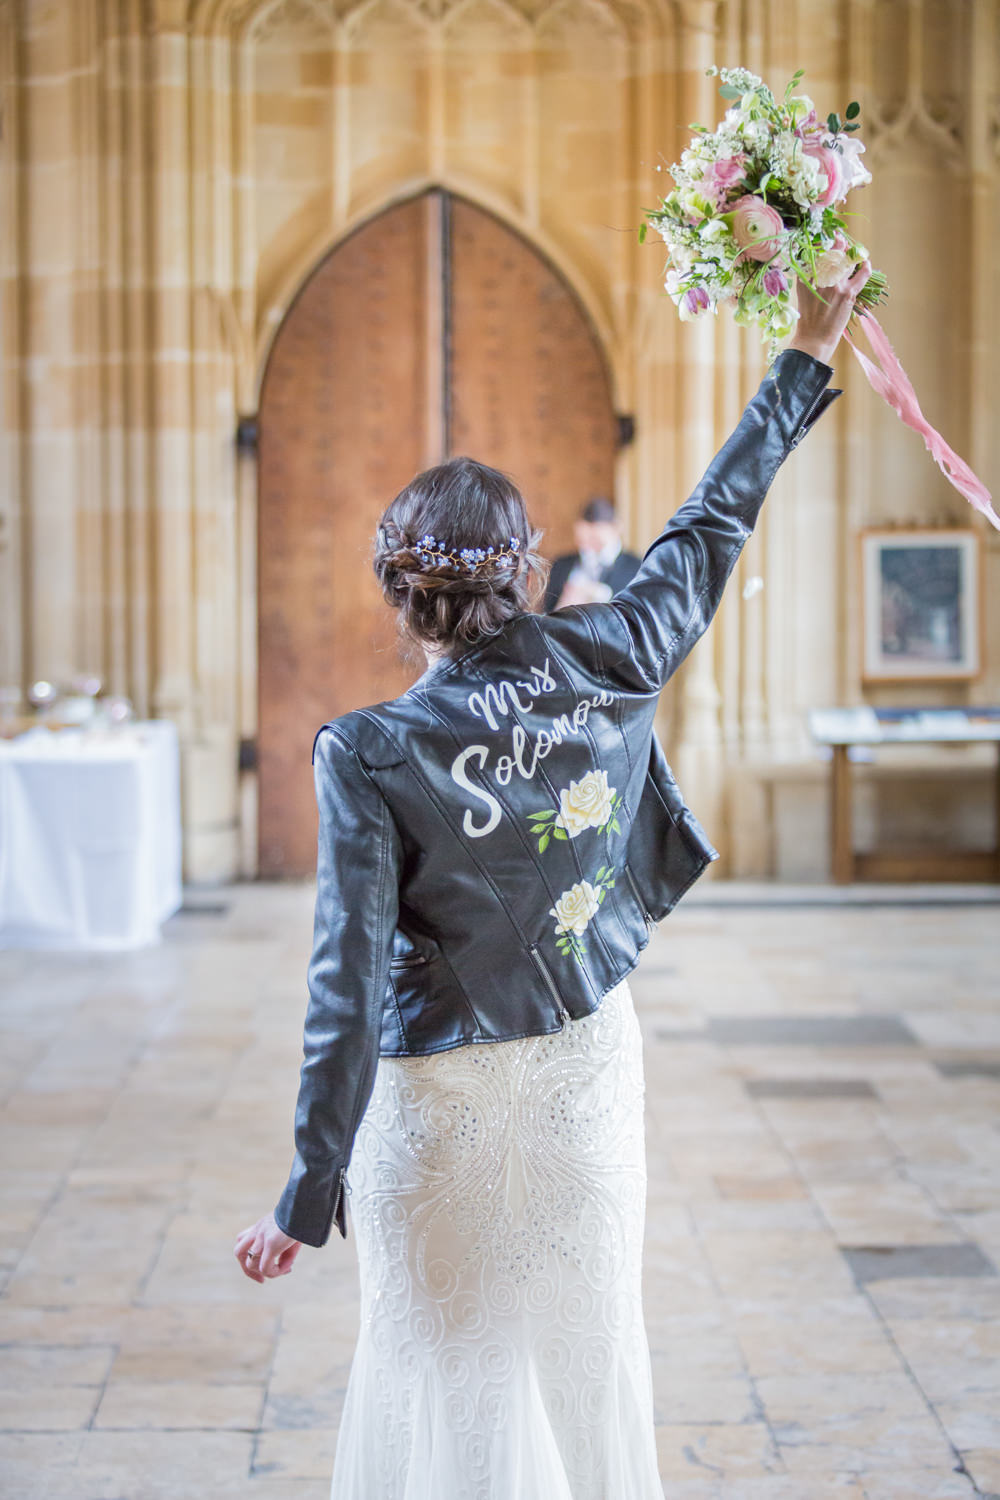 Bride Bridal Beaded Fitted Phase Eight Dress Bouquet Ribbon Leather Jacket Bodleian Library Wedding Anita Nicholson Photography